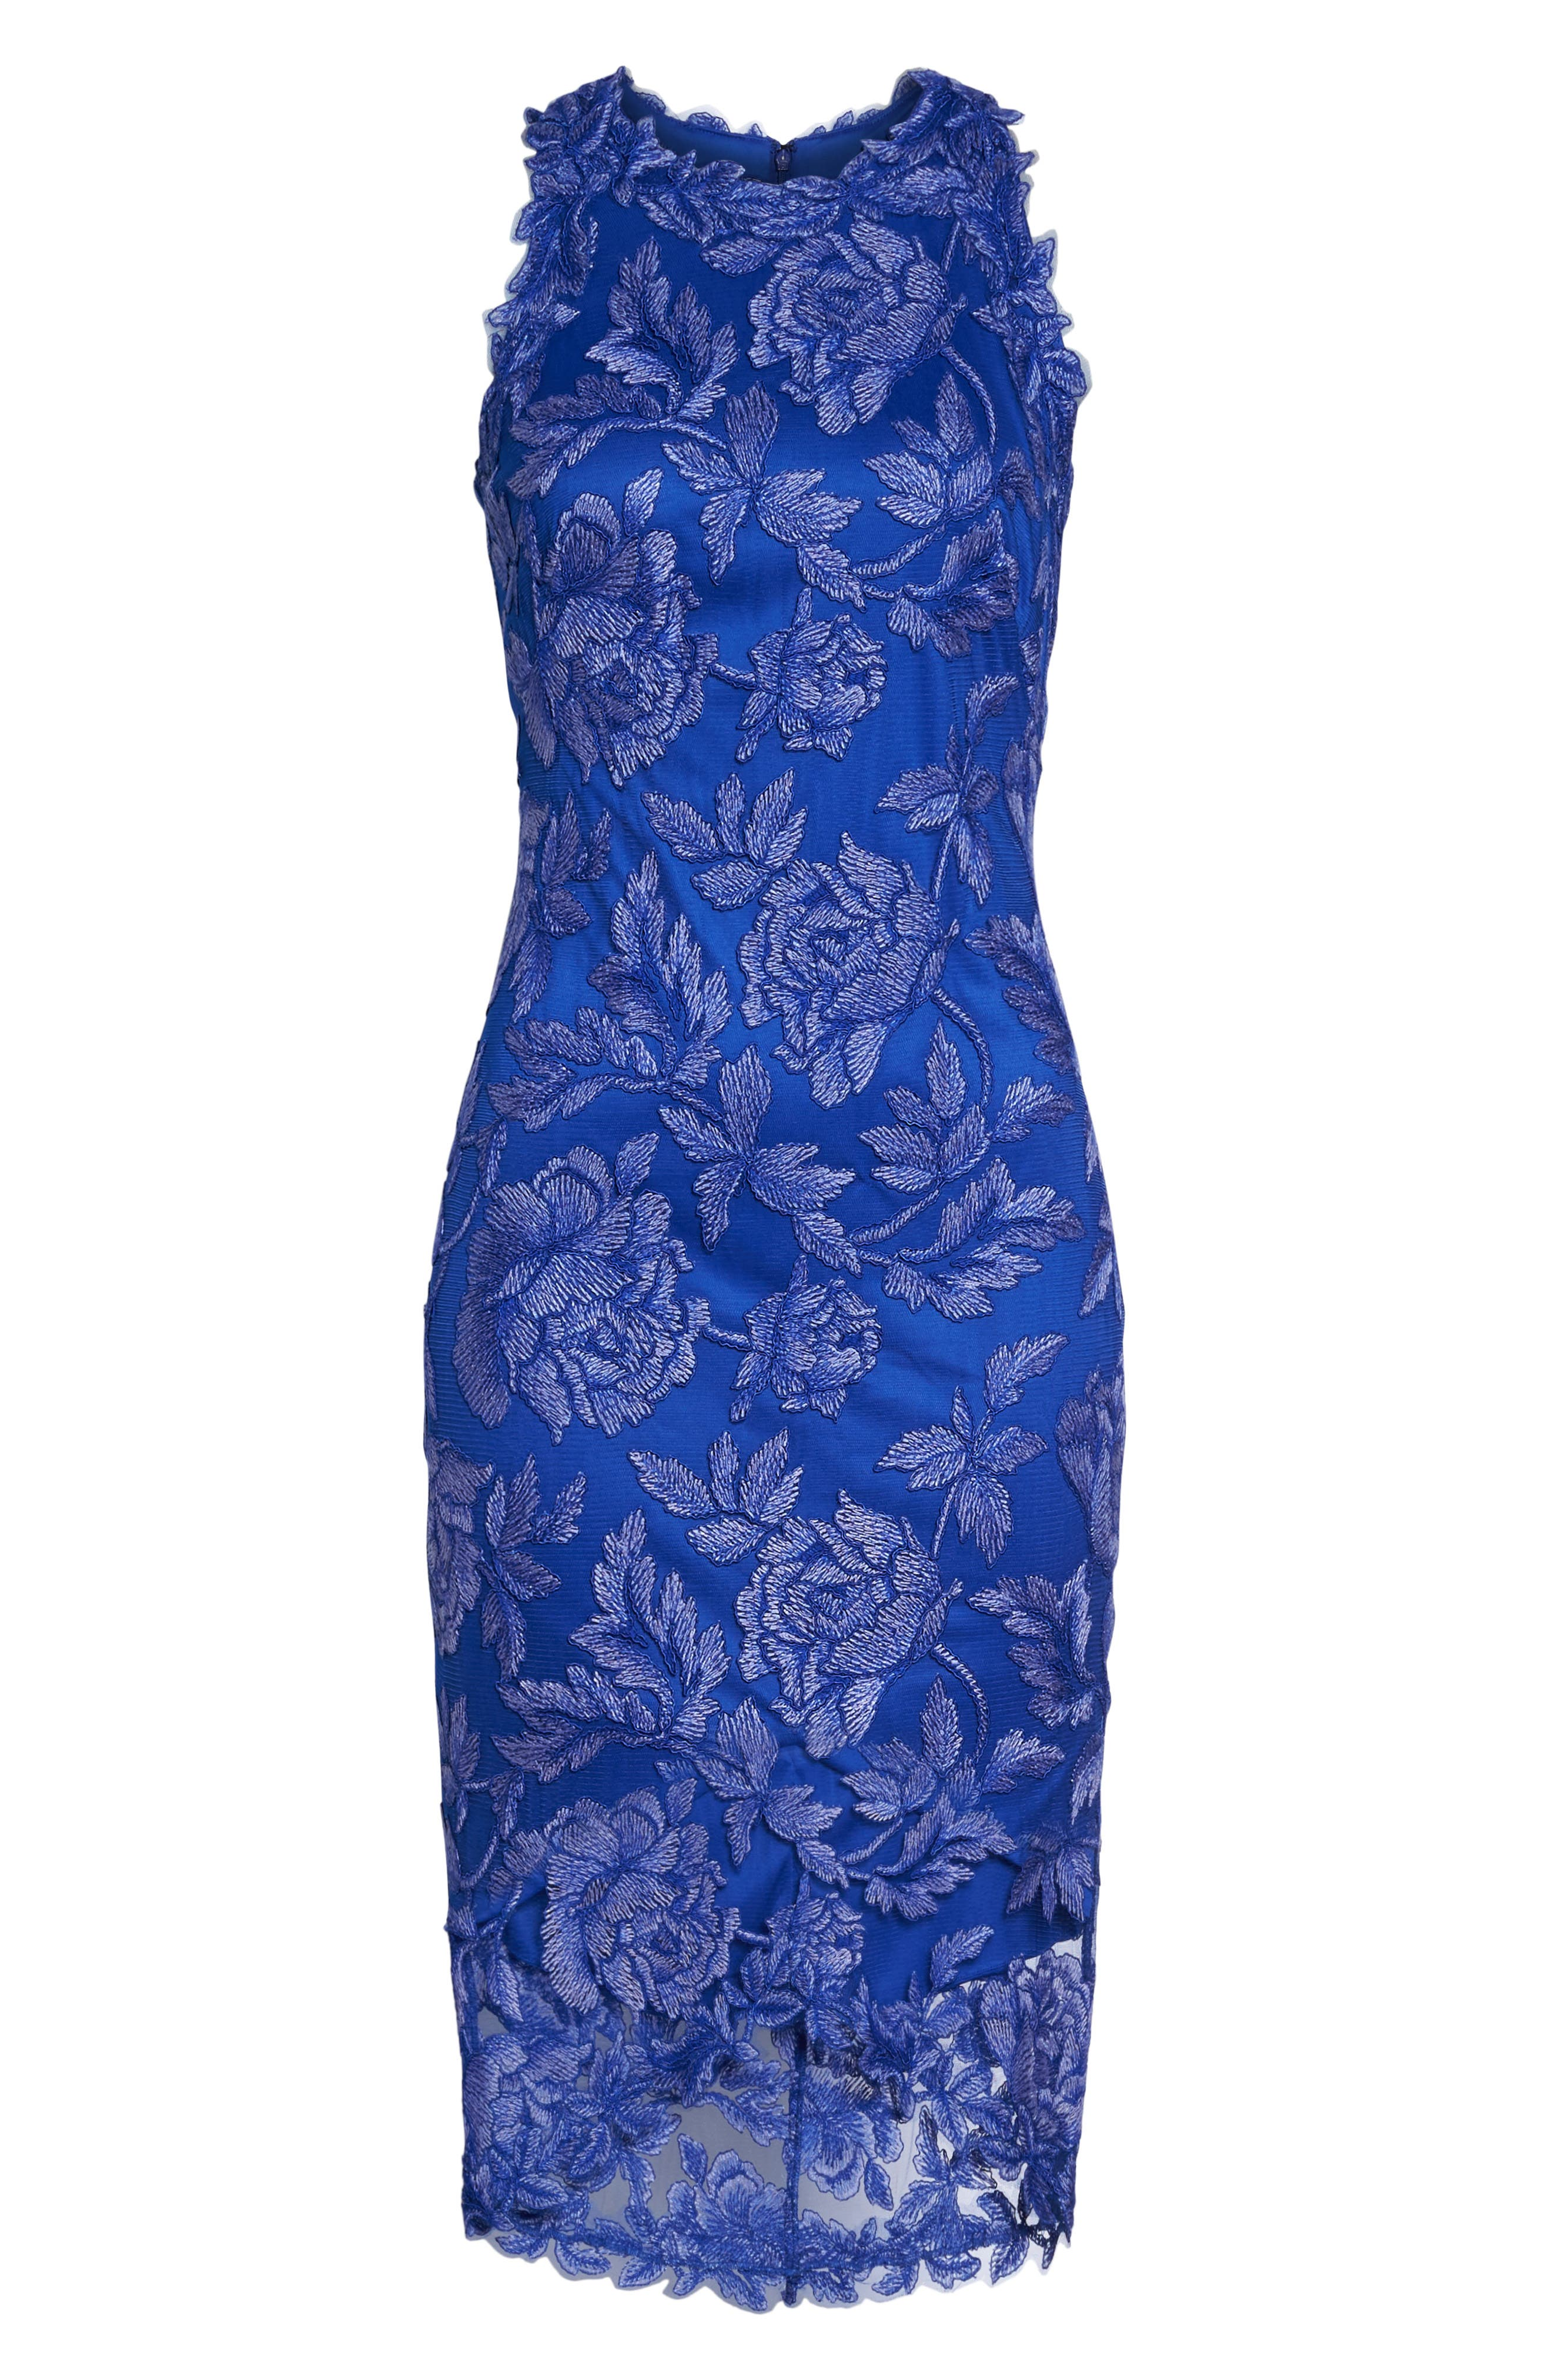 Embroidered Floral Sheath Dress,                             Alternate thumbnail 6, color,                             Blue Lily